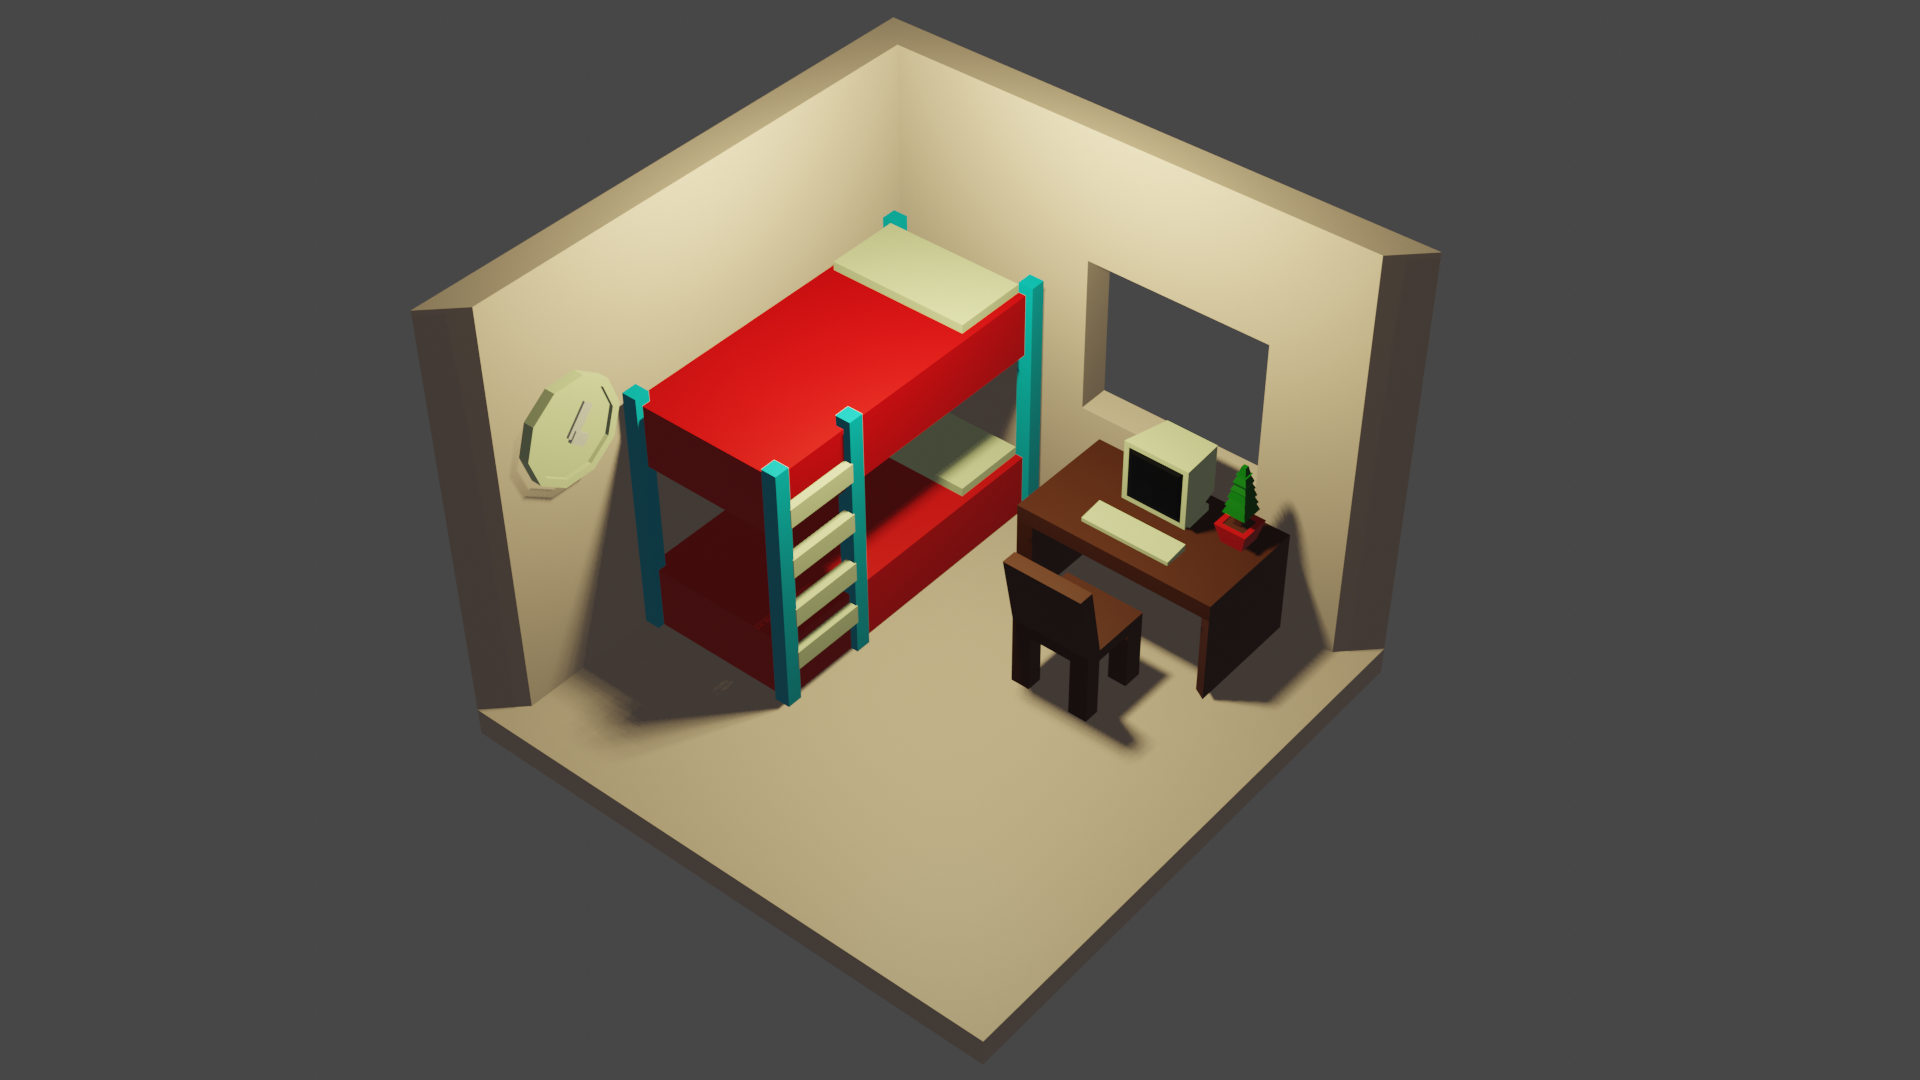 lowpoly room preview image 1